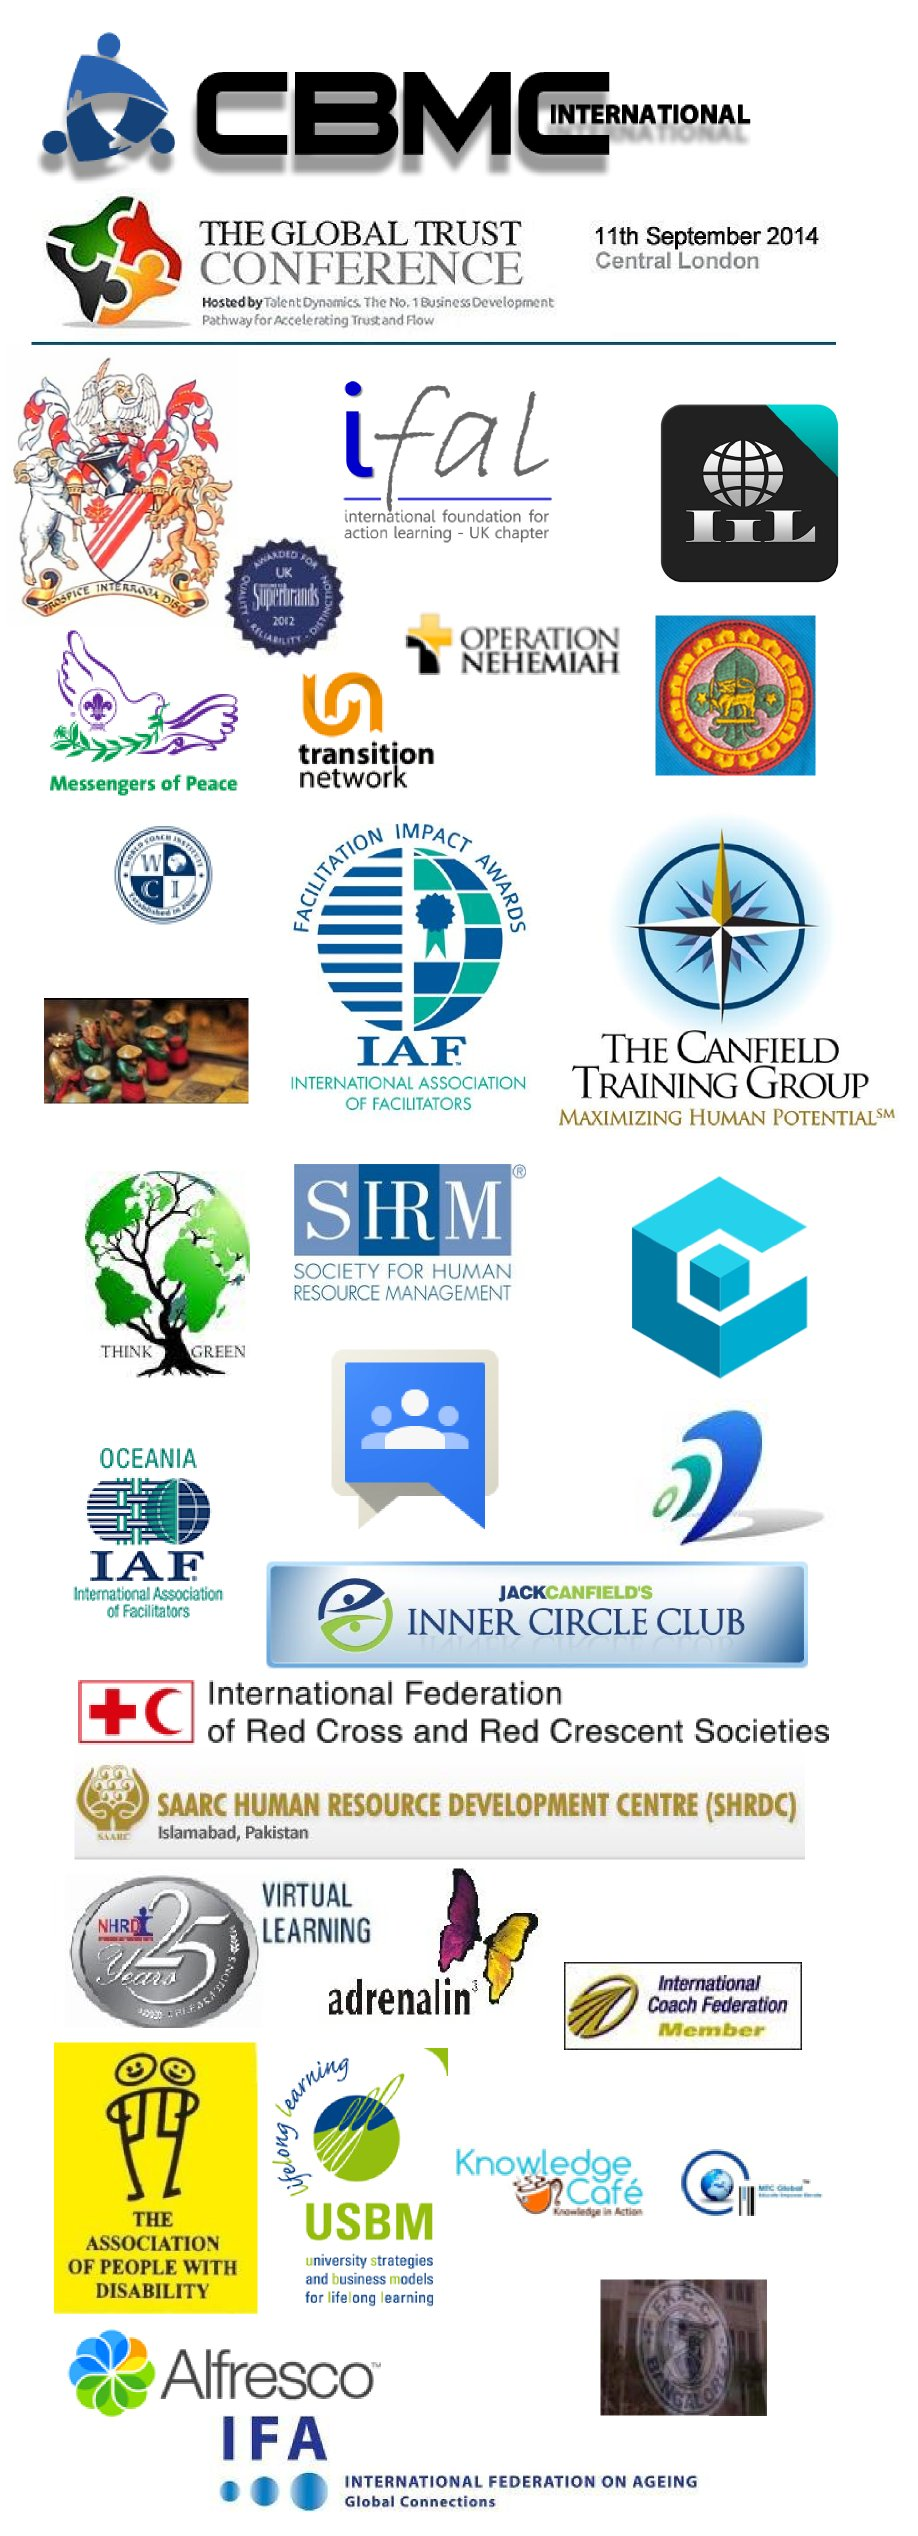 Groups and associations